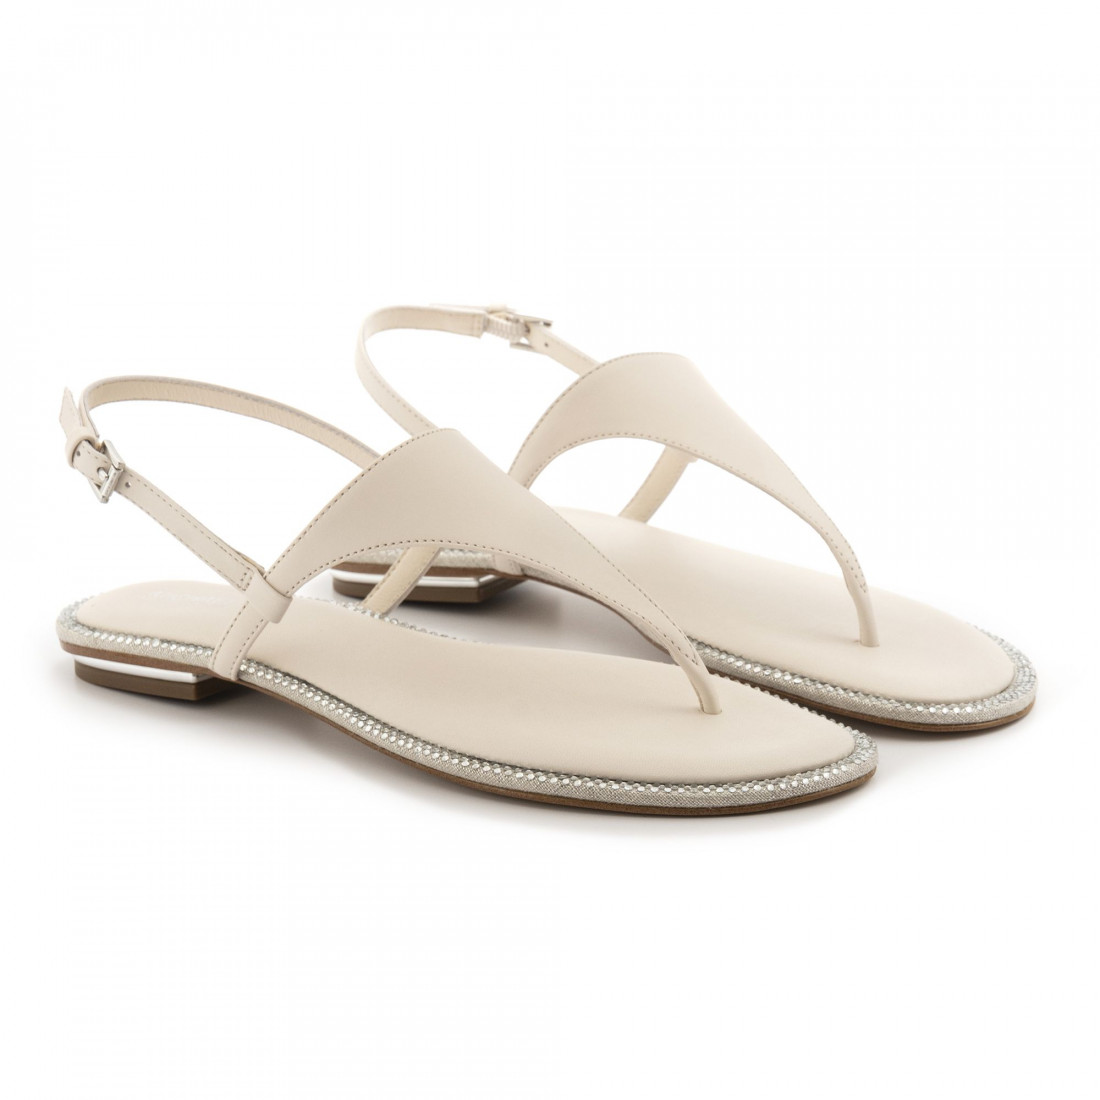 sandals woman michael kors 40s9enfa2l 289 4928